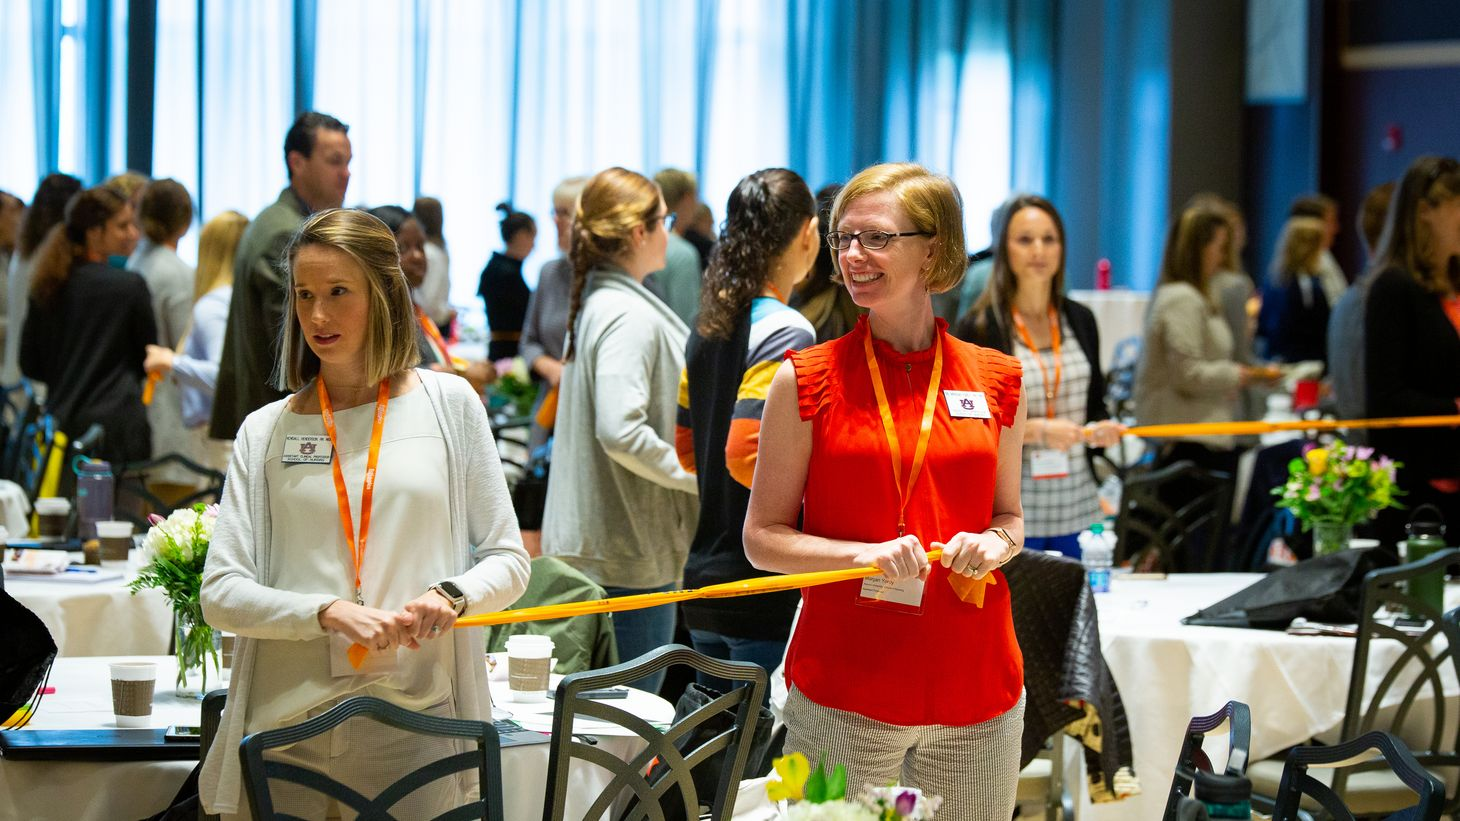 attendees participate in wellness activity at BHAC Summit